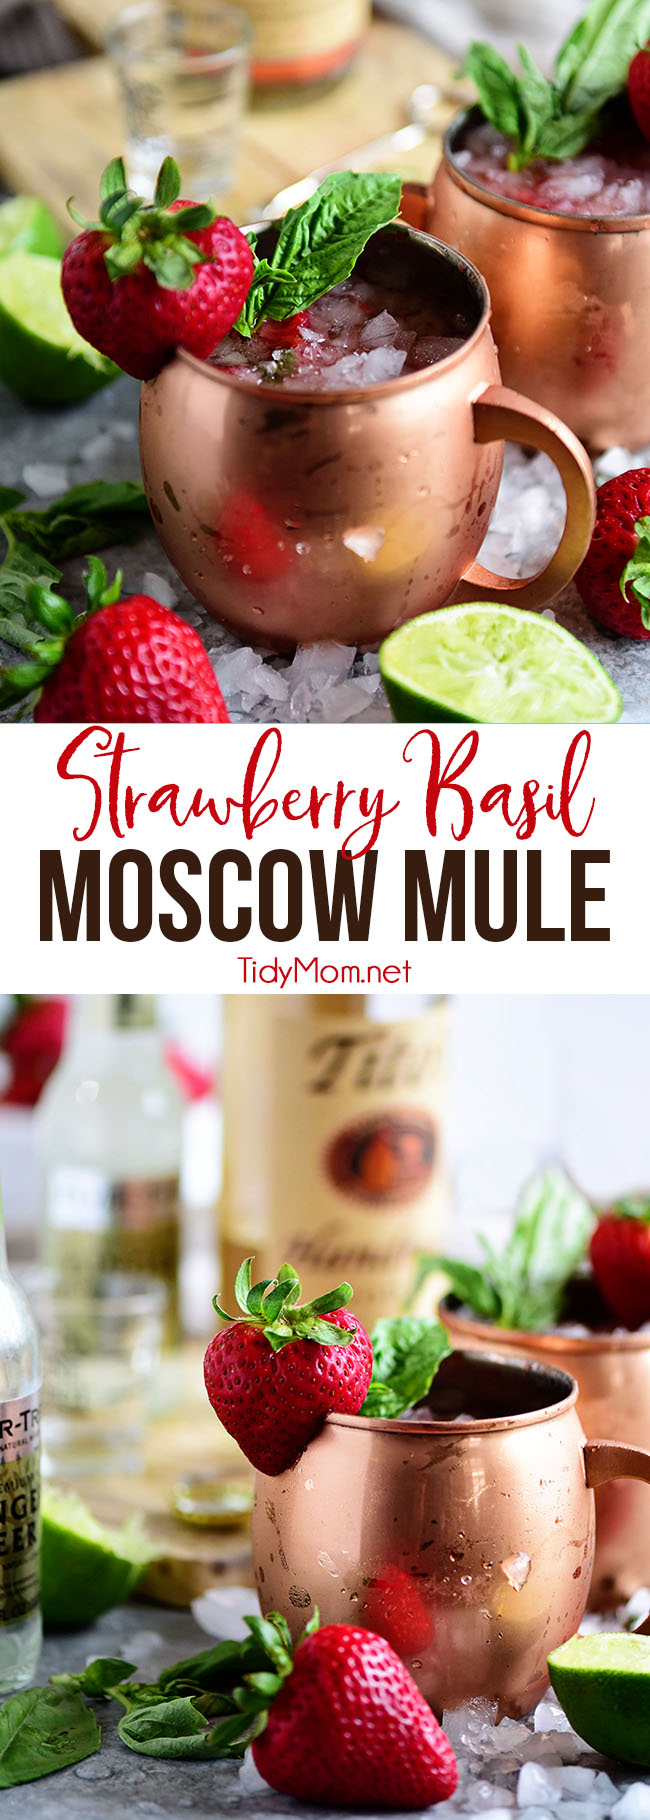 Strawberry Basil Moscow Mule is the perfect summer cocktail. Made like a traditional Moscow Mule with vodka, ginger beer and lime, with the addition of muddled fresh strawberries and basil. Print the recipe at TidyMom.net #cocktails #cocktailrecipe #moscowmule #strawberry